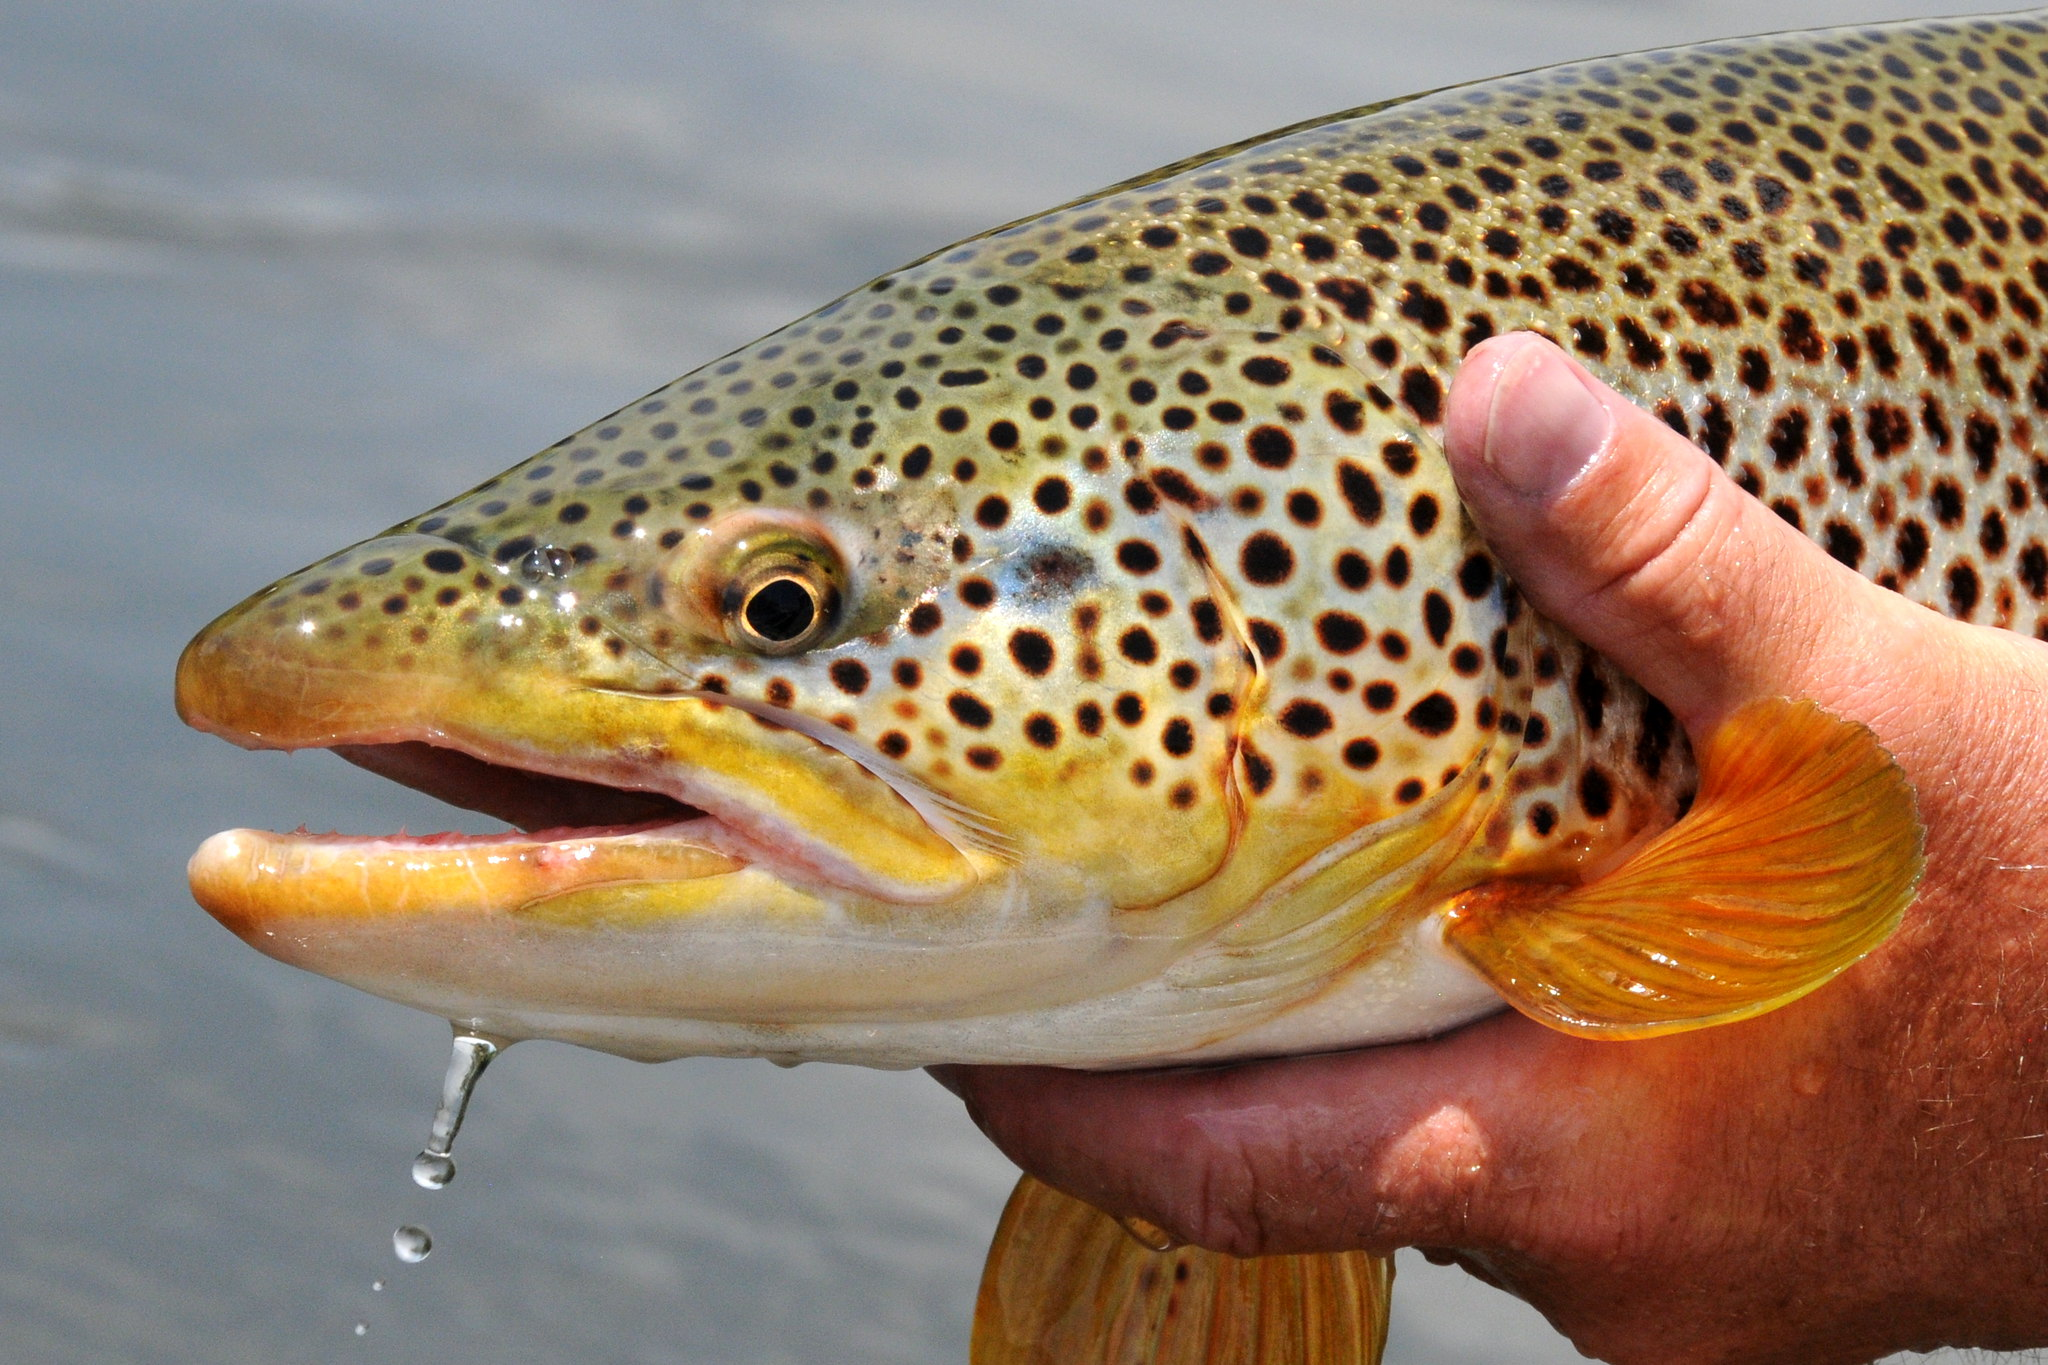 Bad drought and dead trout tragedy foreseeable and avoidable